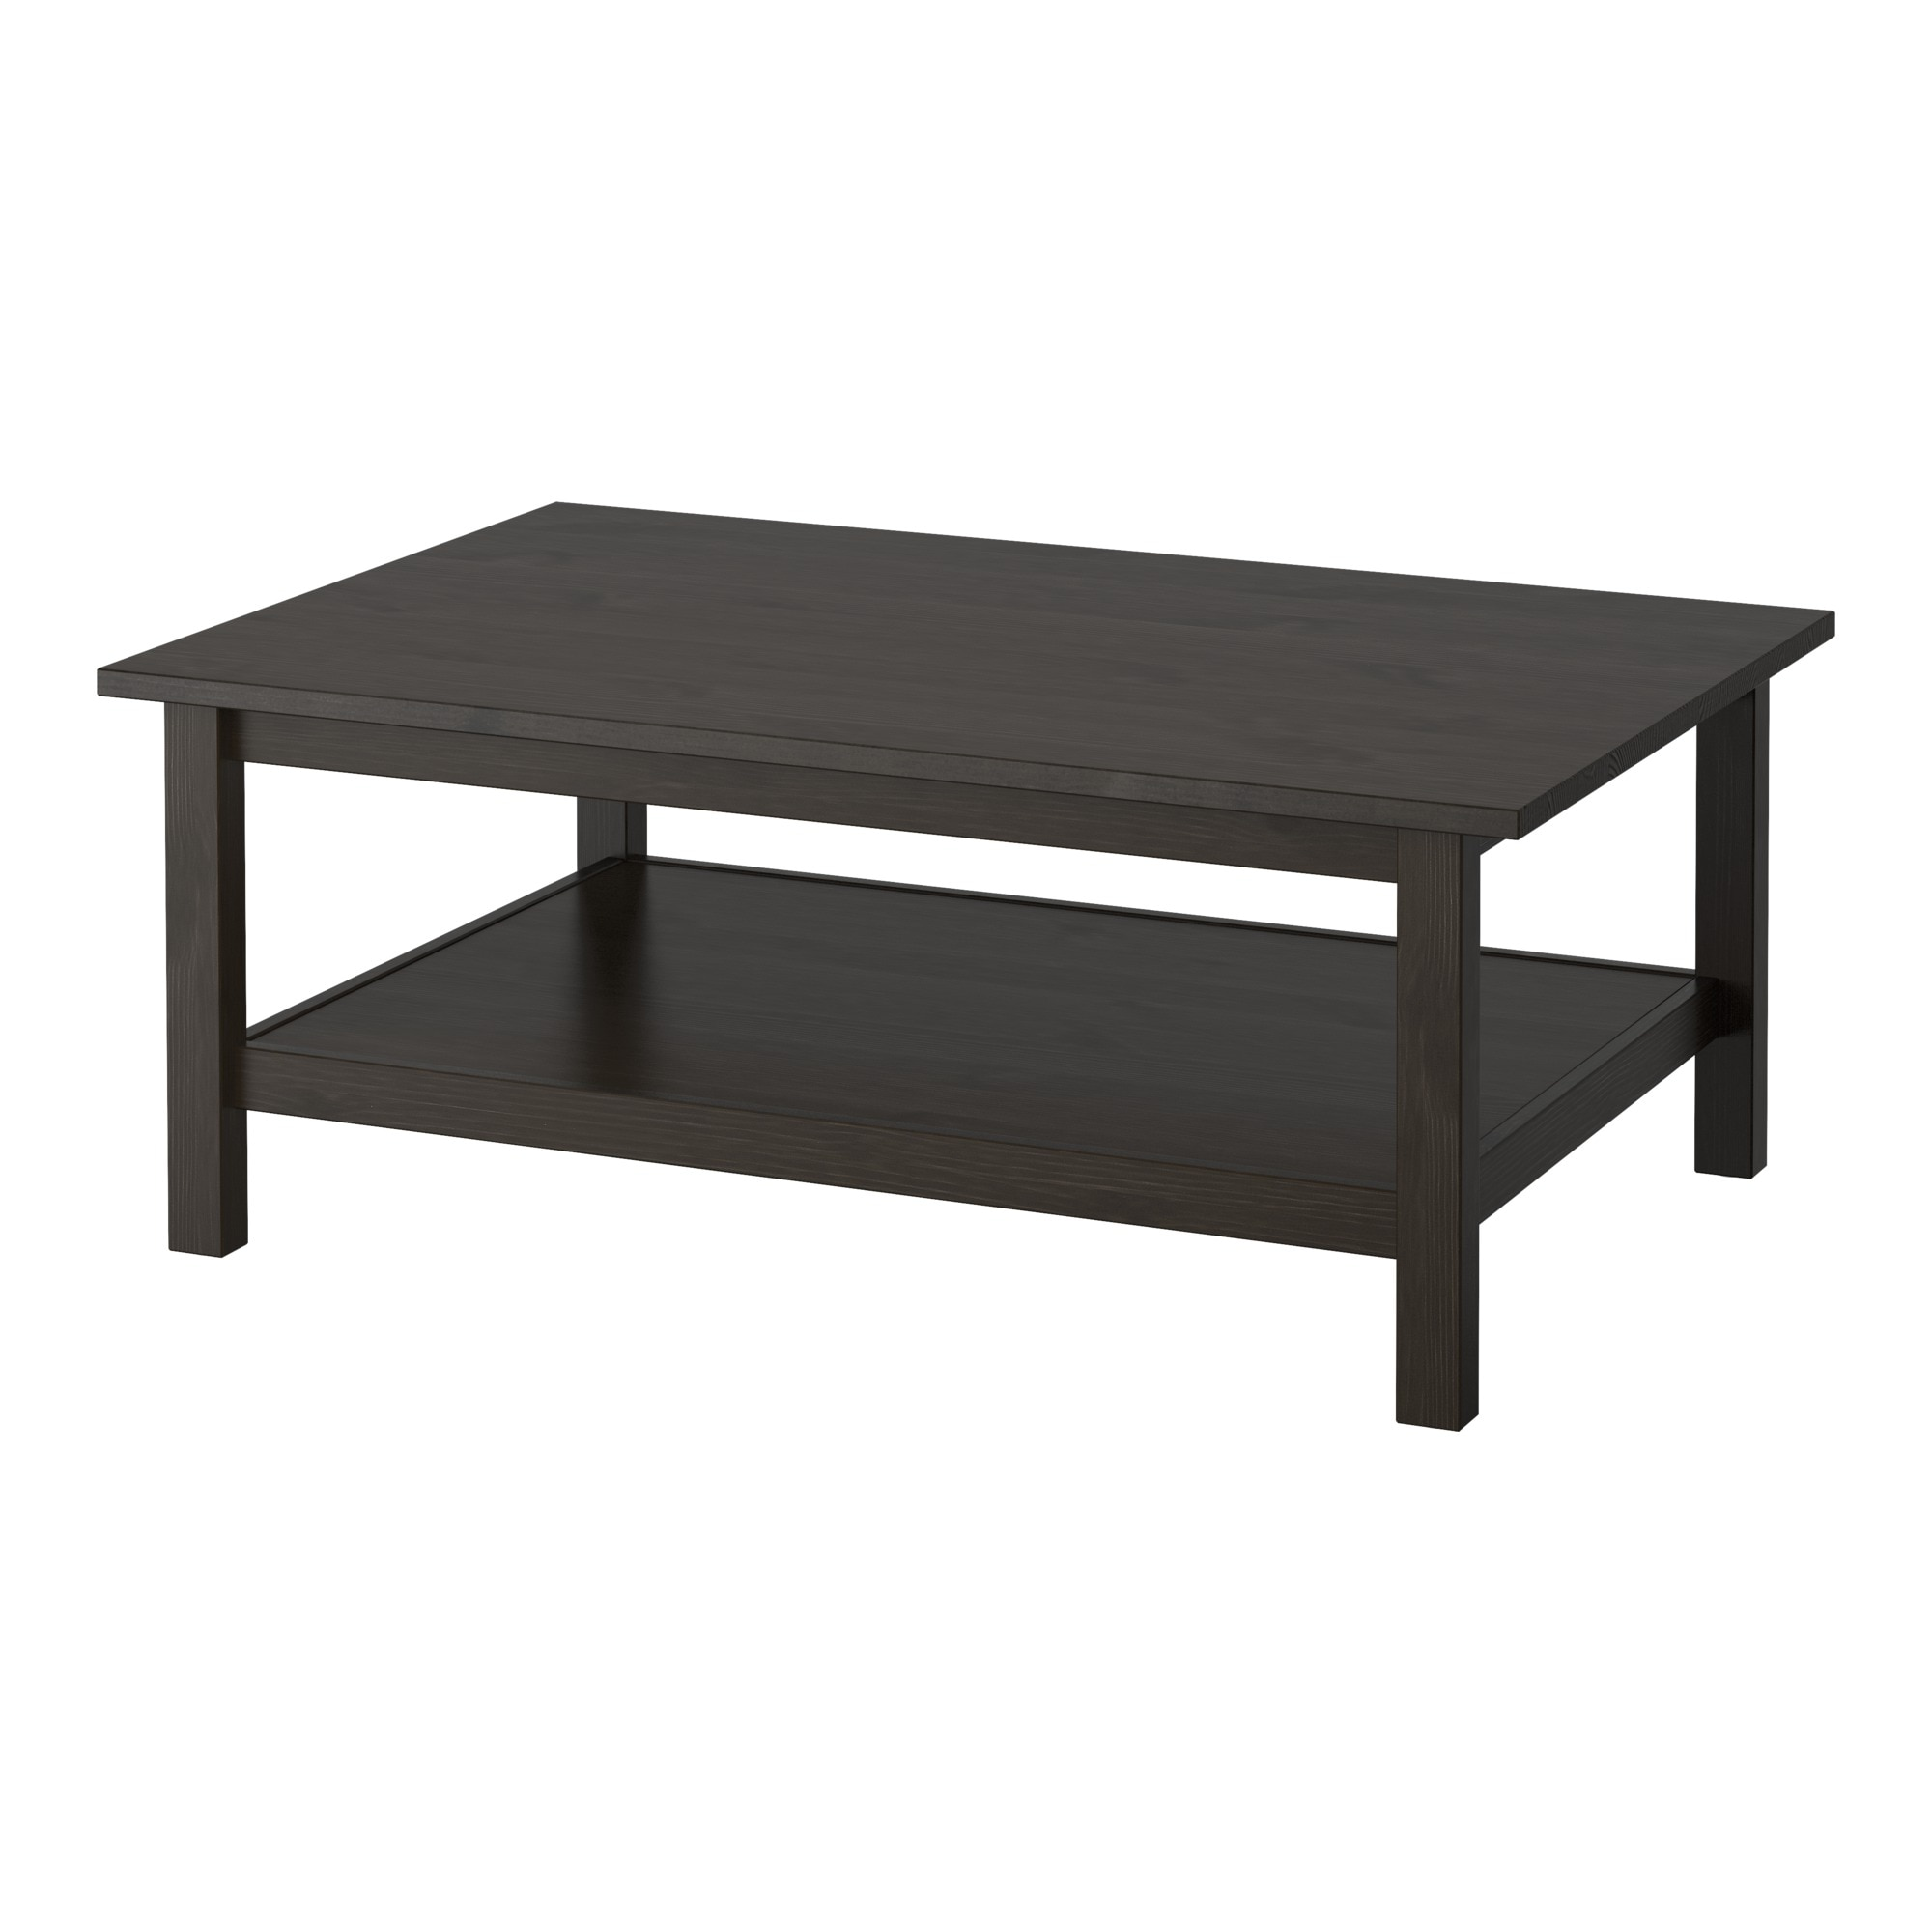 Ikea leksvik coffee table - Hemnes Coffee Table Black Brown Length 46 1 2 Width